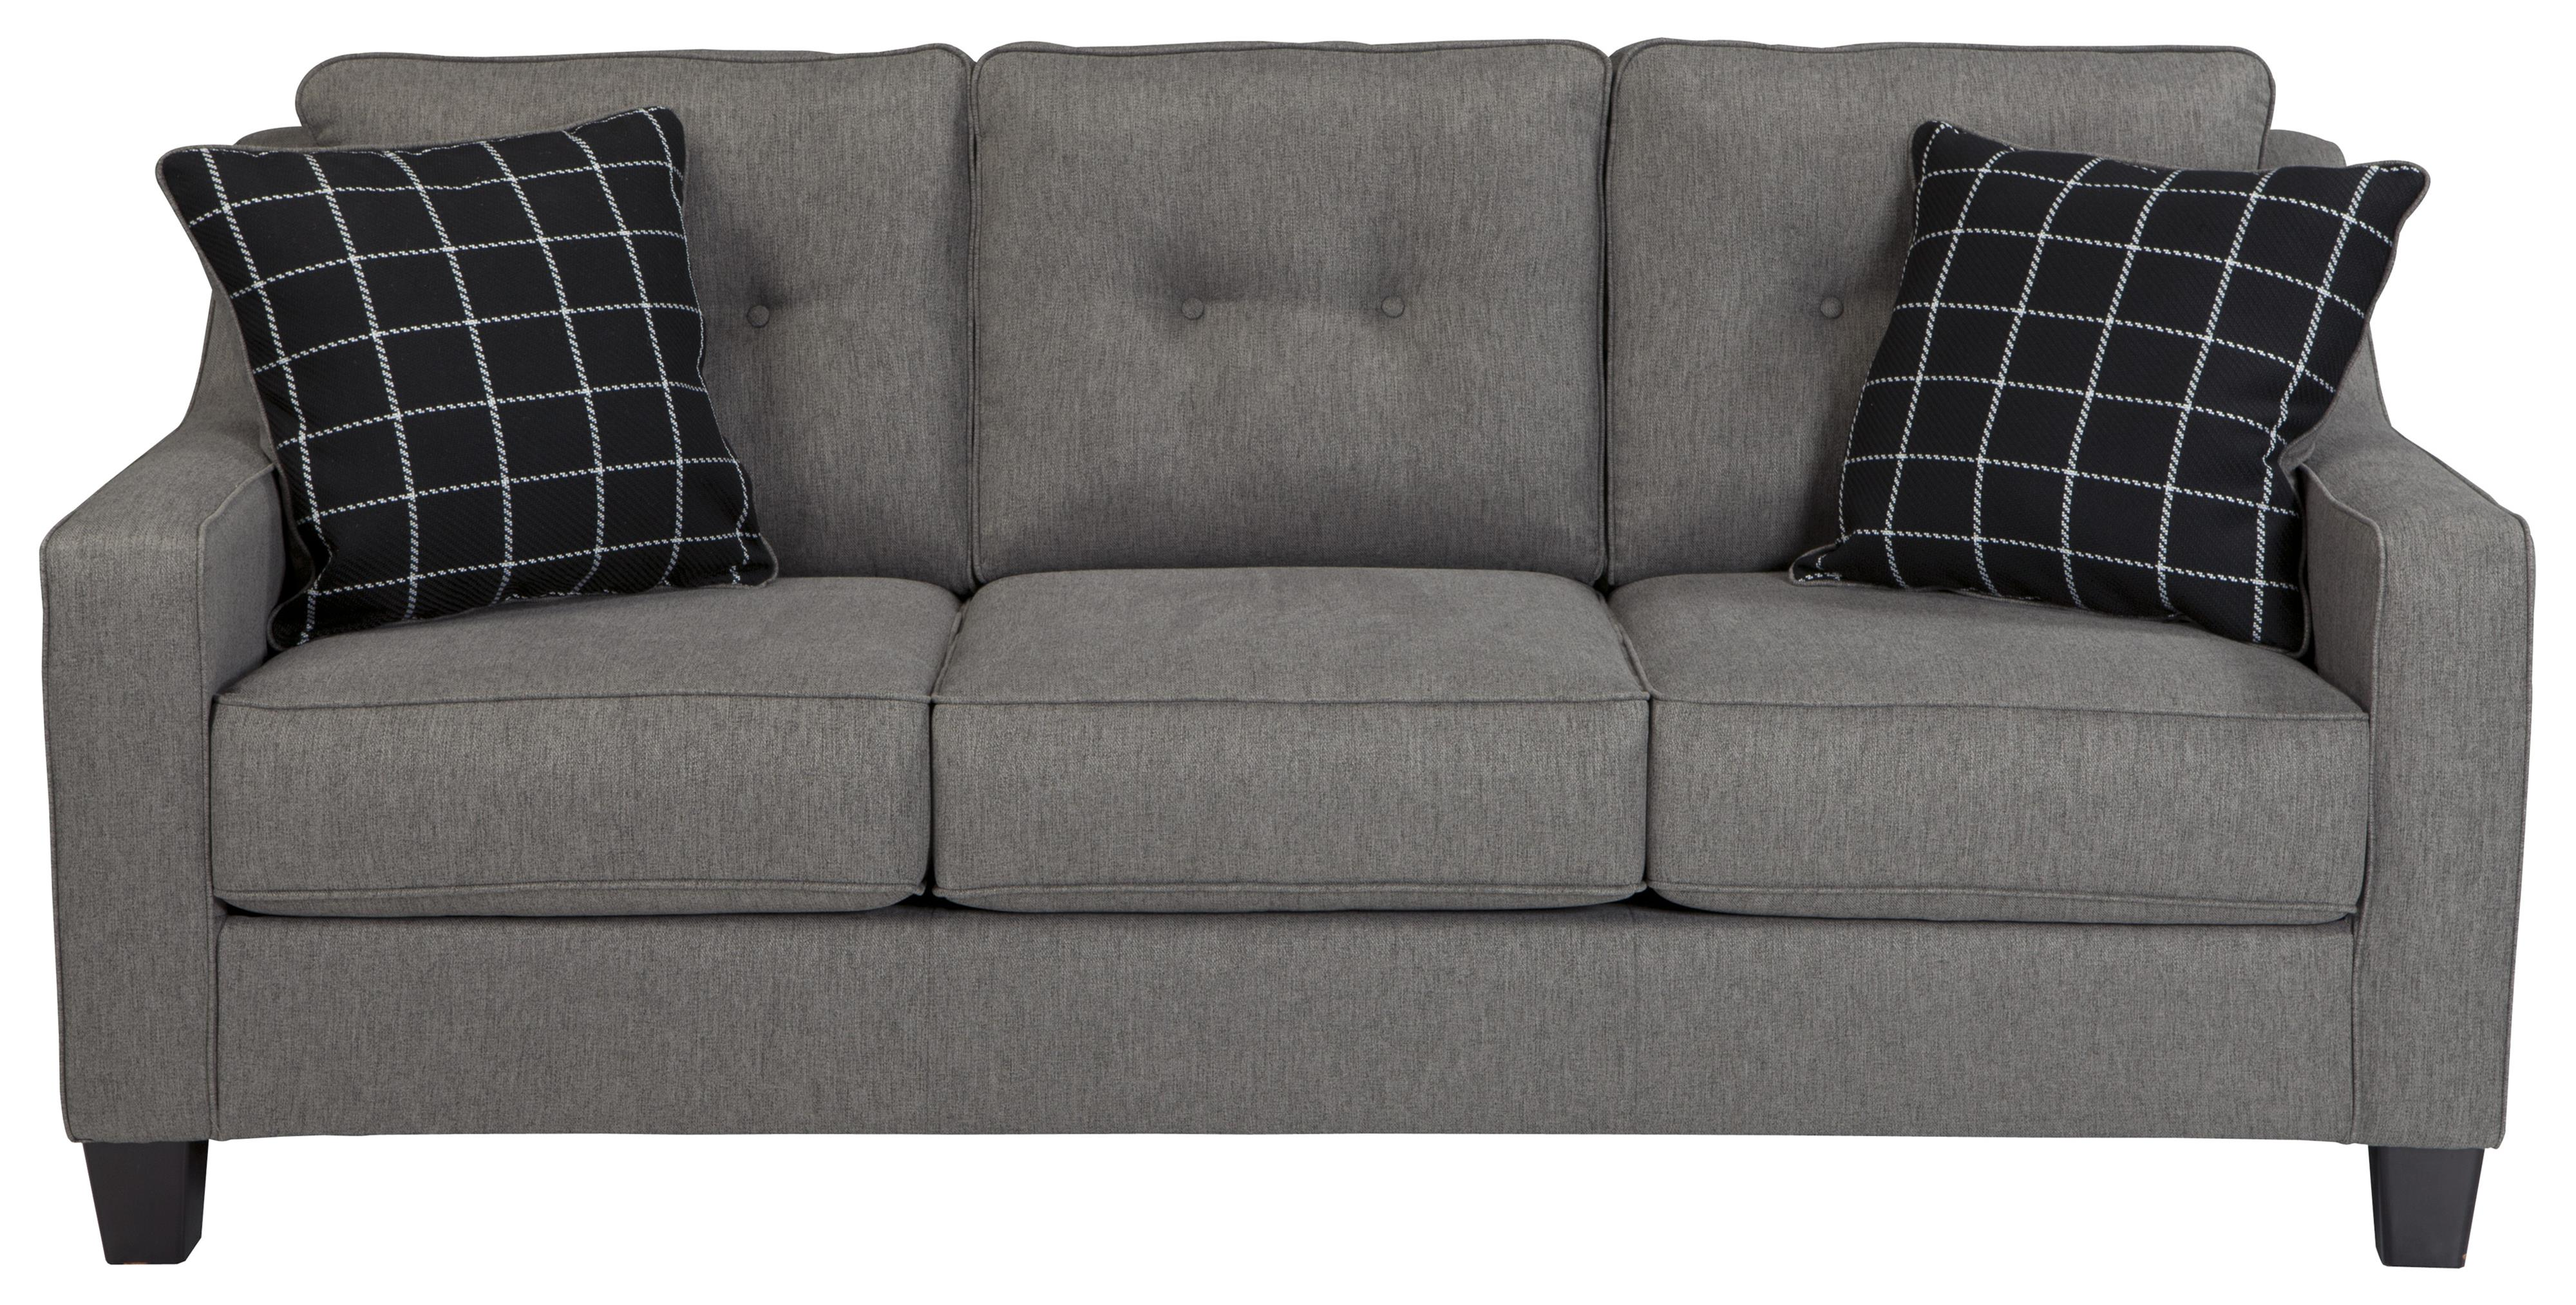 Popular Contemporary Sofa with Track Arms & Tufted Back by Benchcraft  HS04